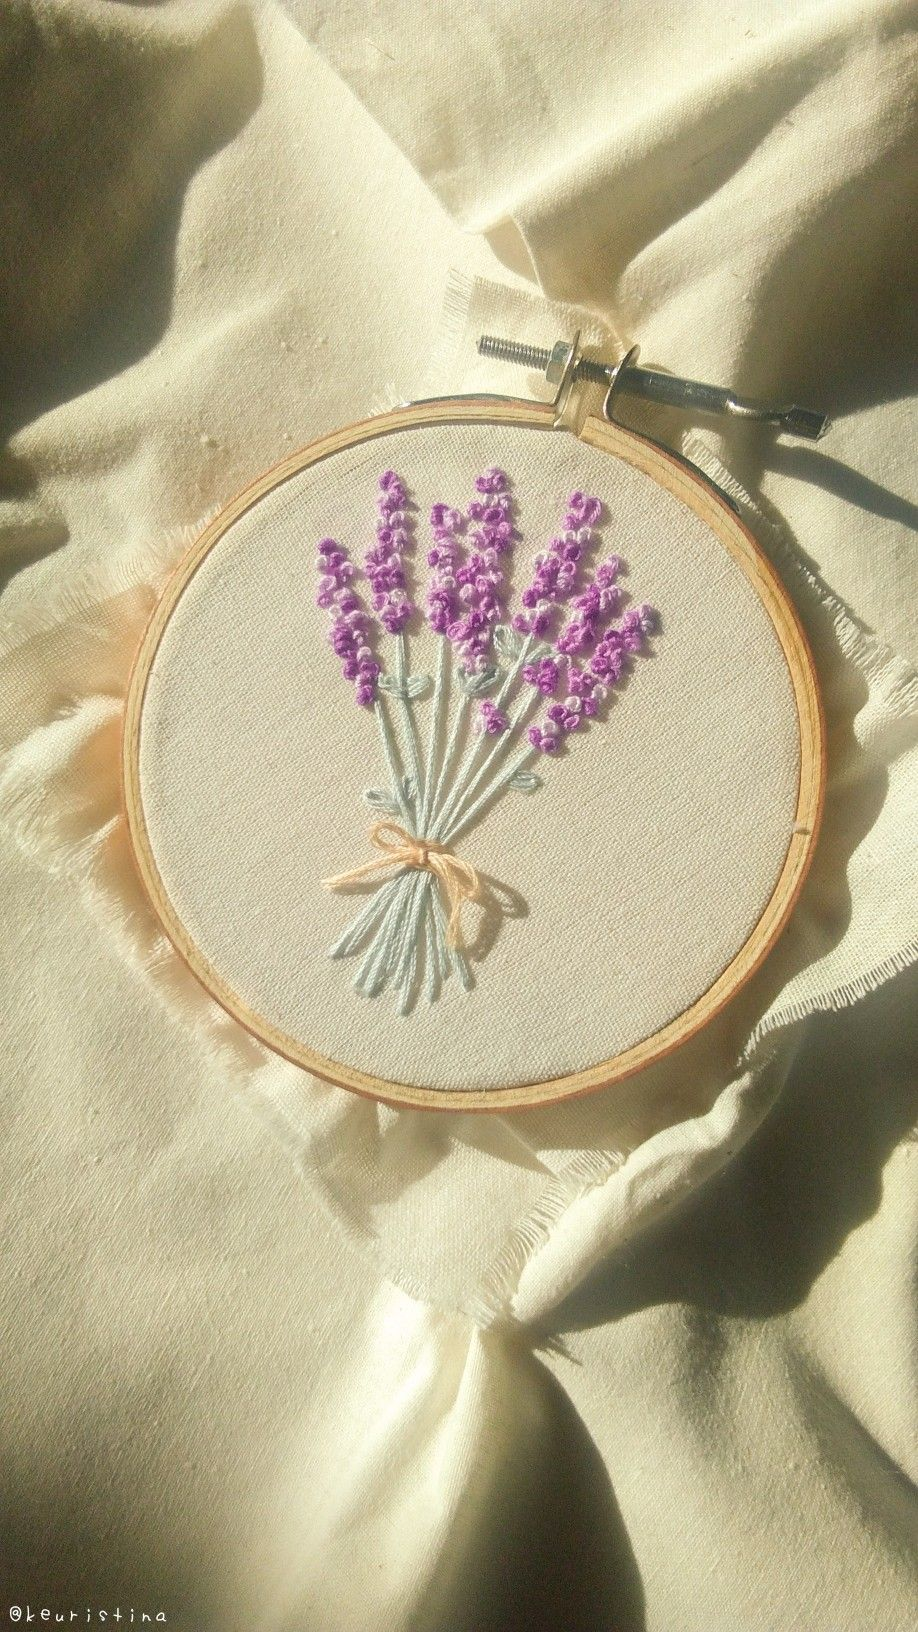 Aesthetic embroidery simple